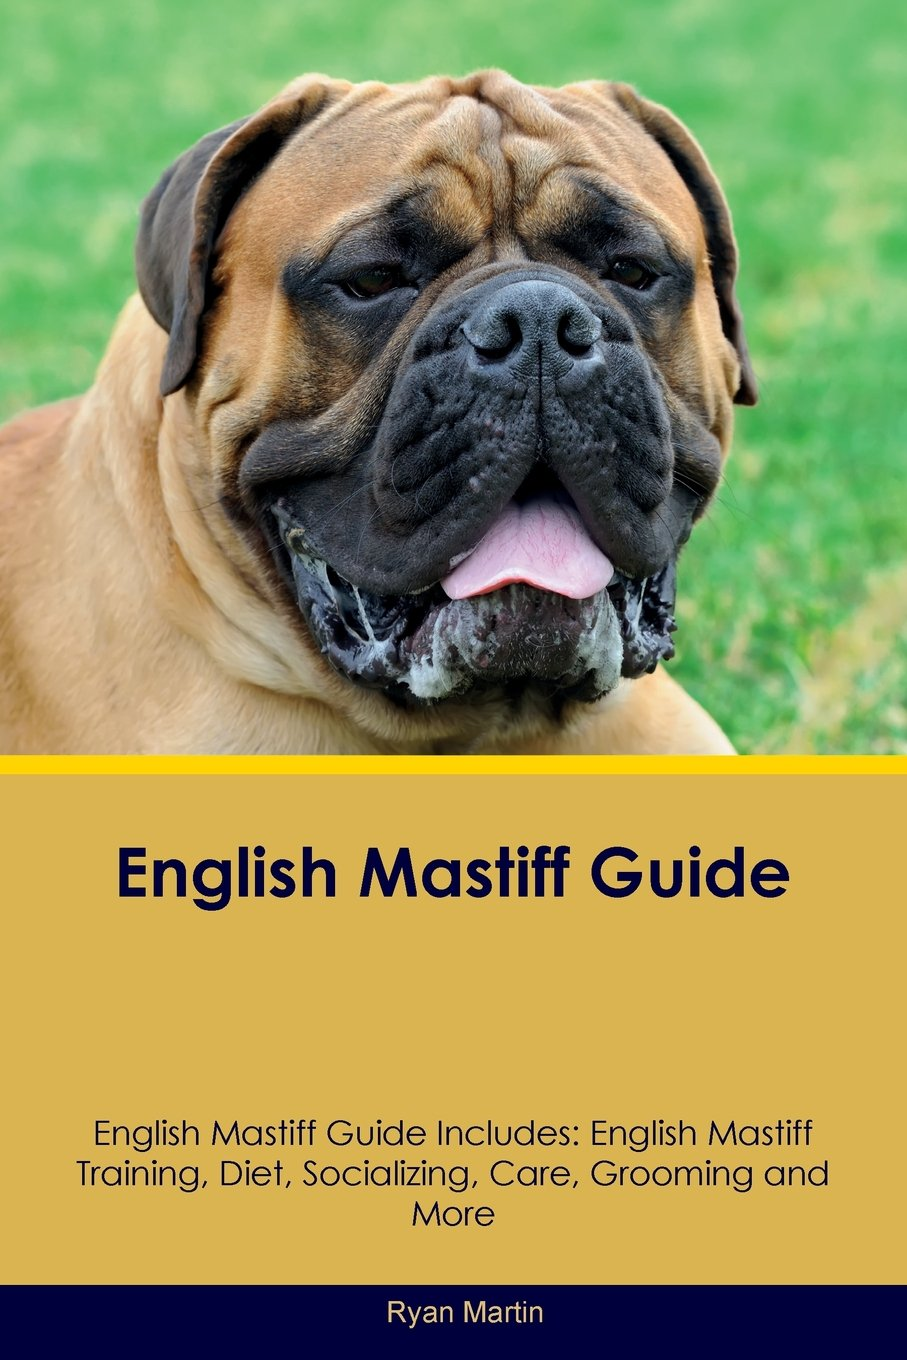 English Mastiff Guide English Mastiff Guide Includes: English Mastiff Training, Diet, Socializing, Care, Grooming, Breeding and More